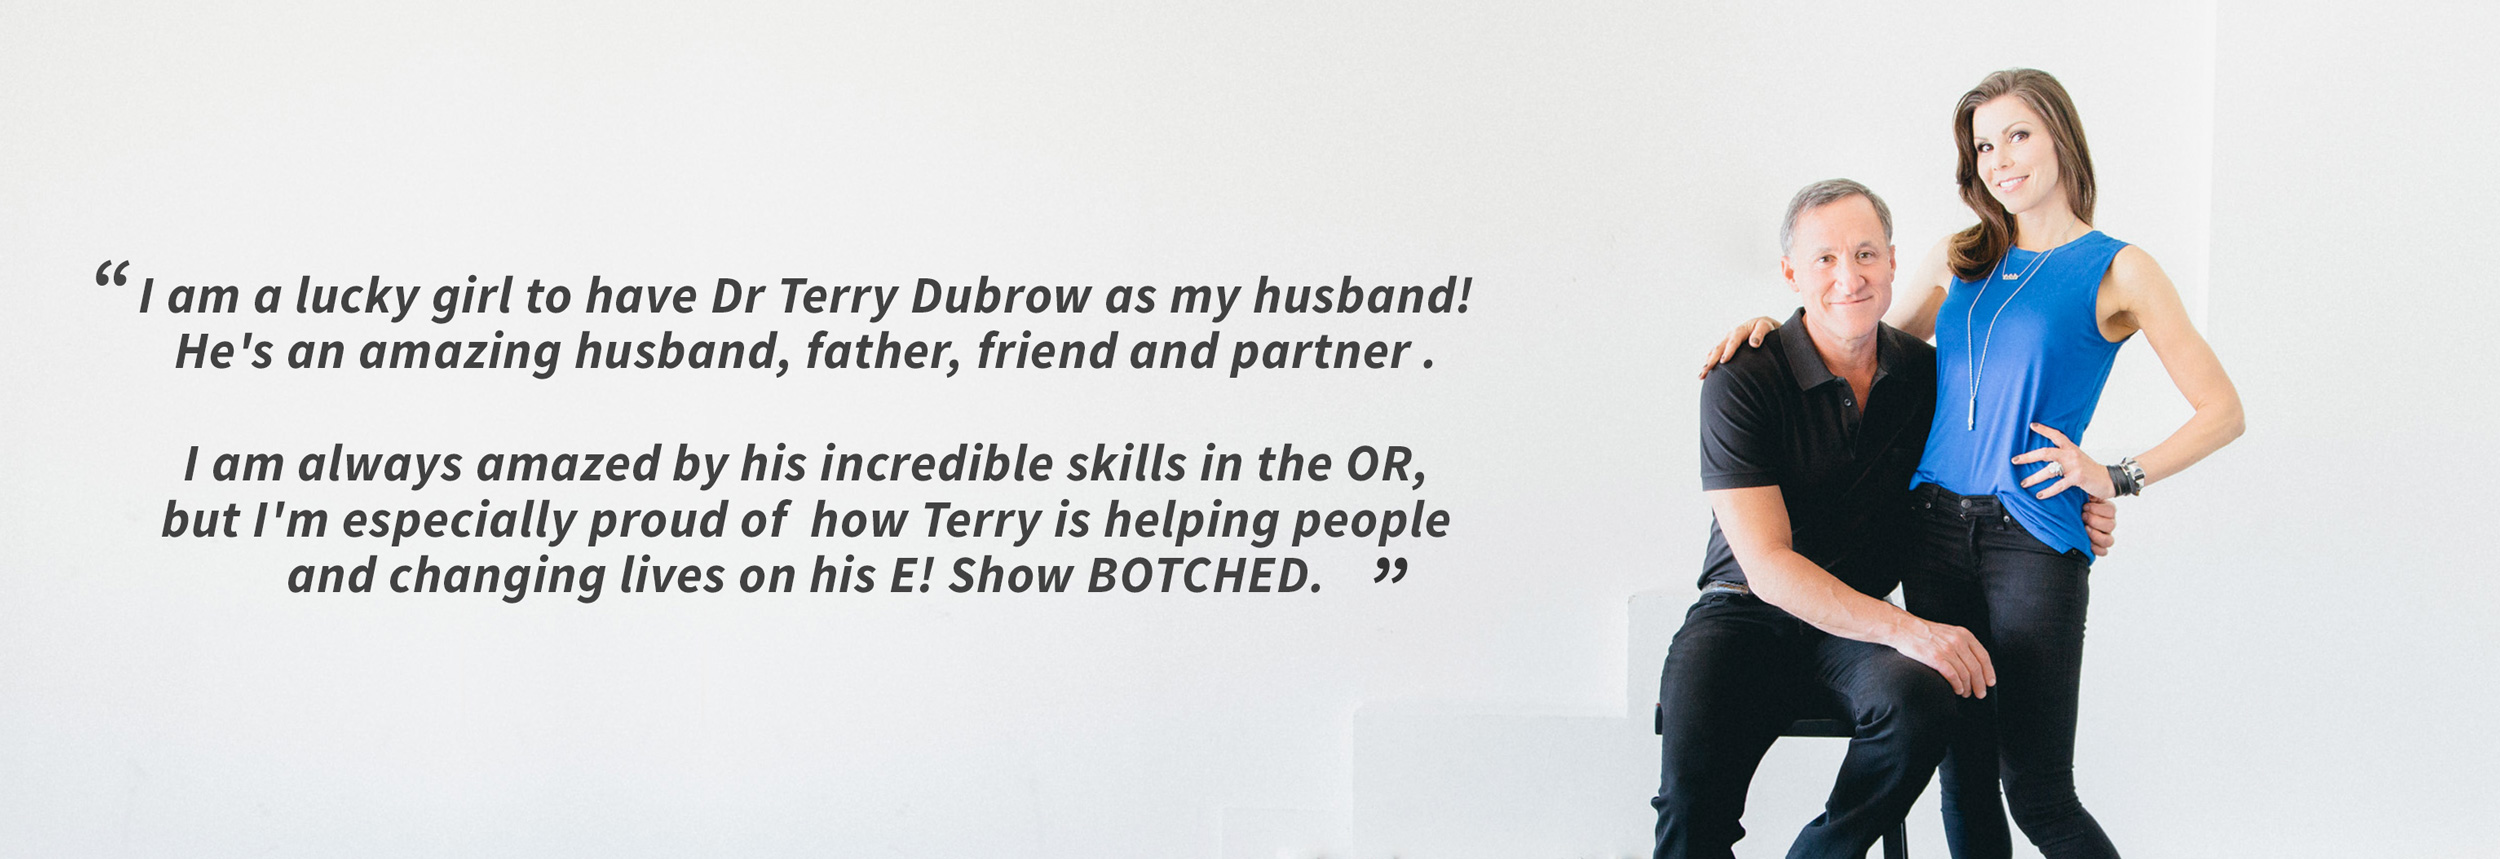 terry-quote